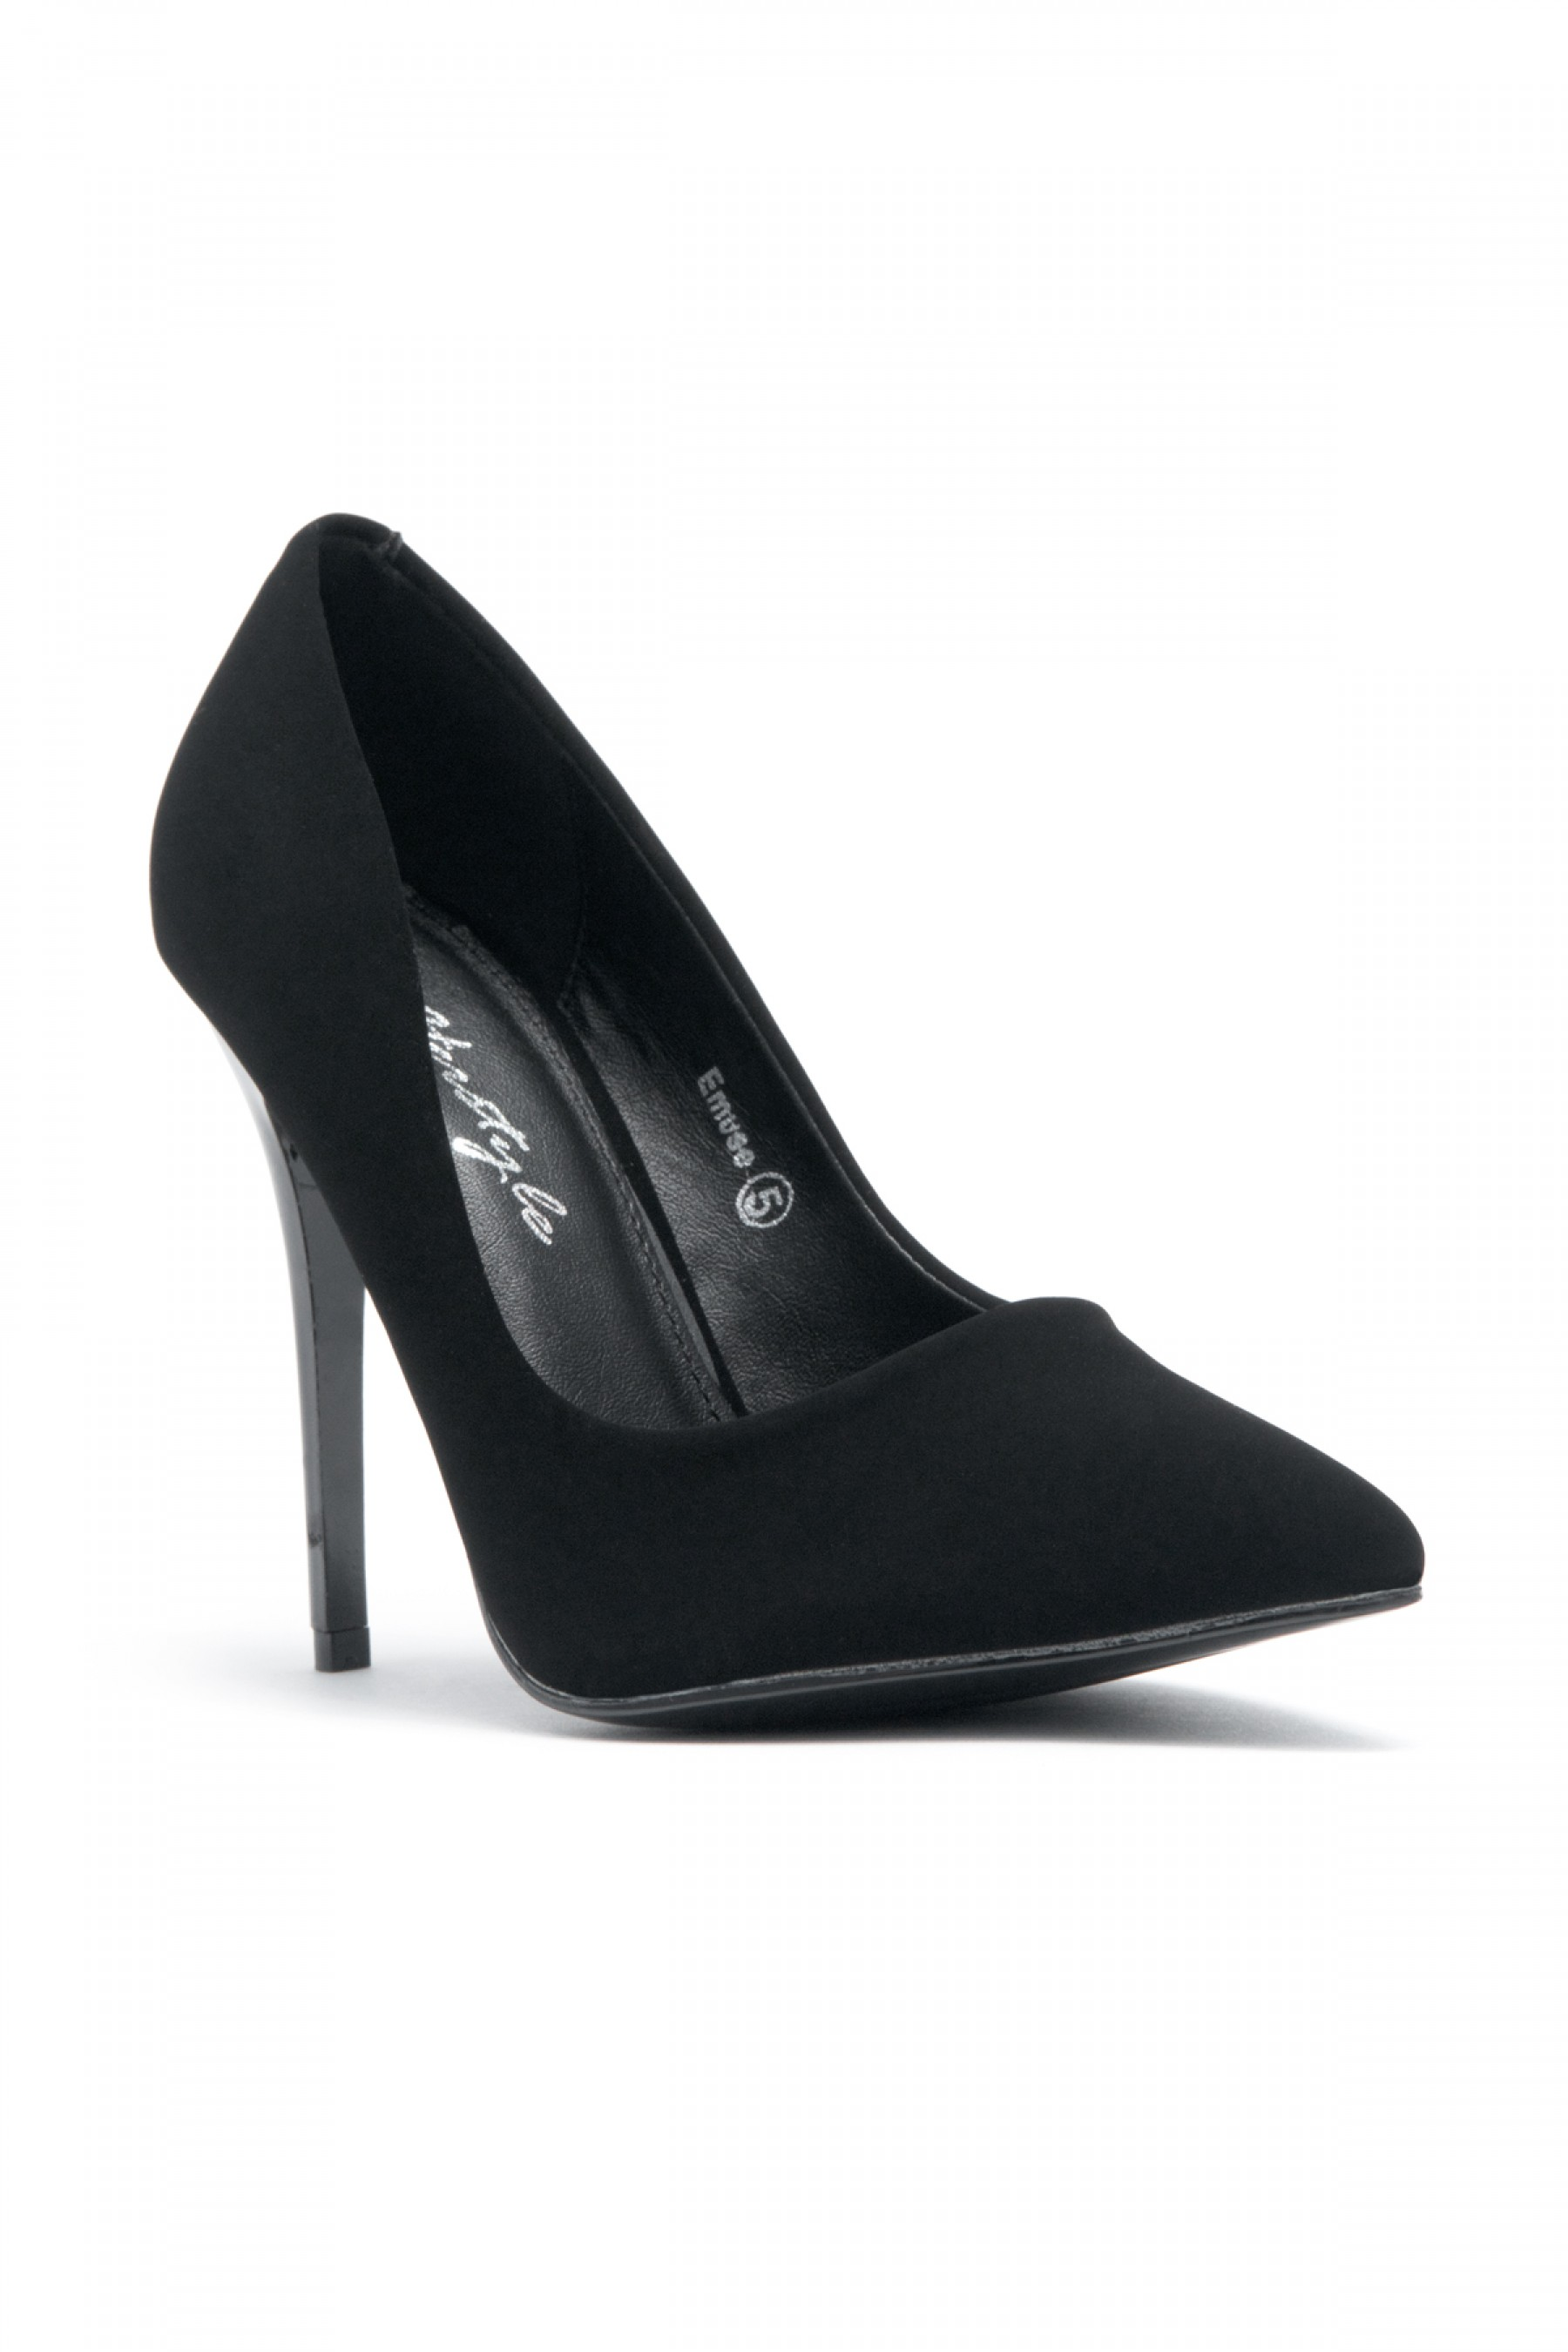 Women's Black Pointed Toe Classic Pump EMUSE